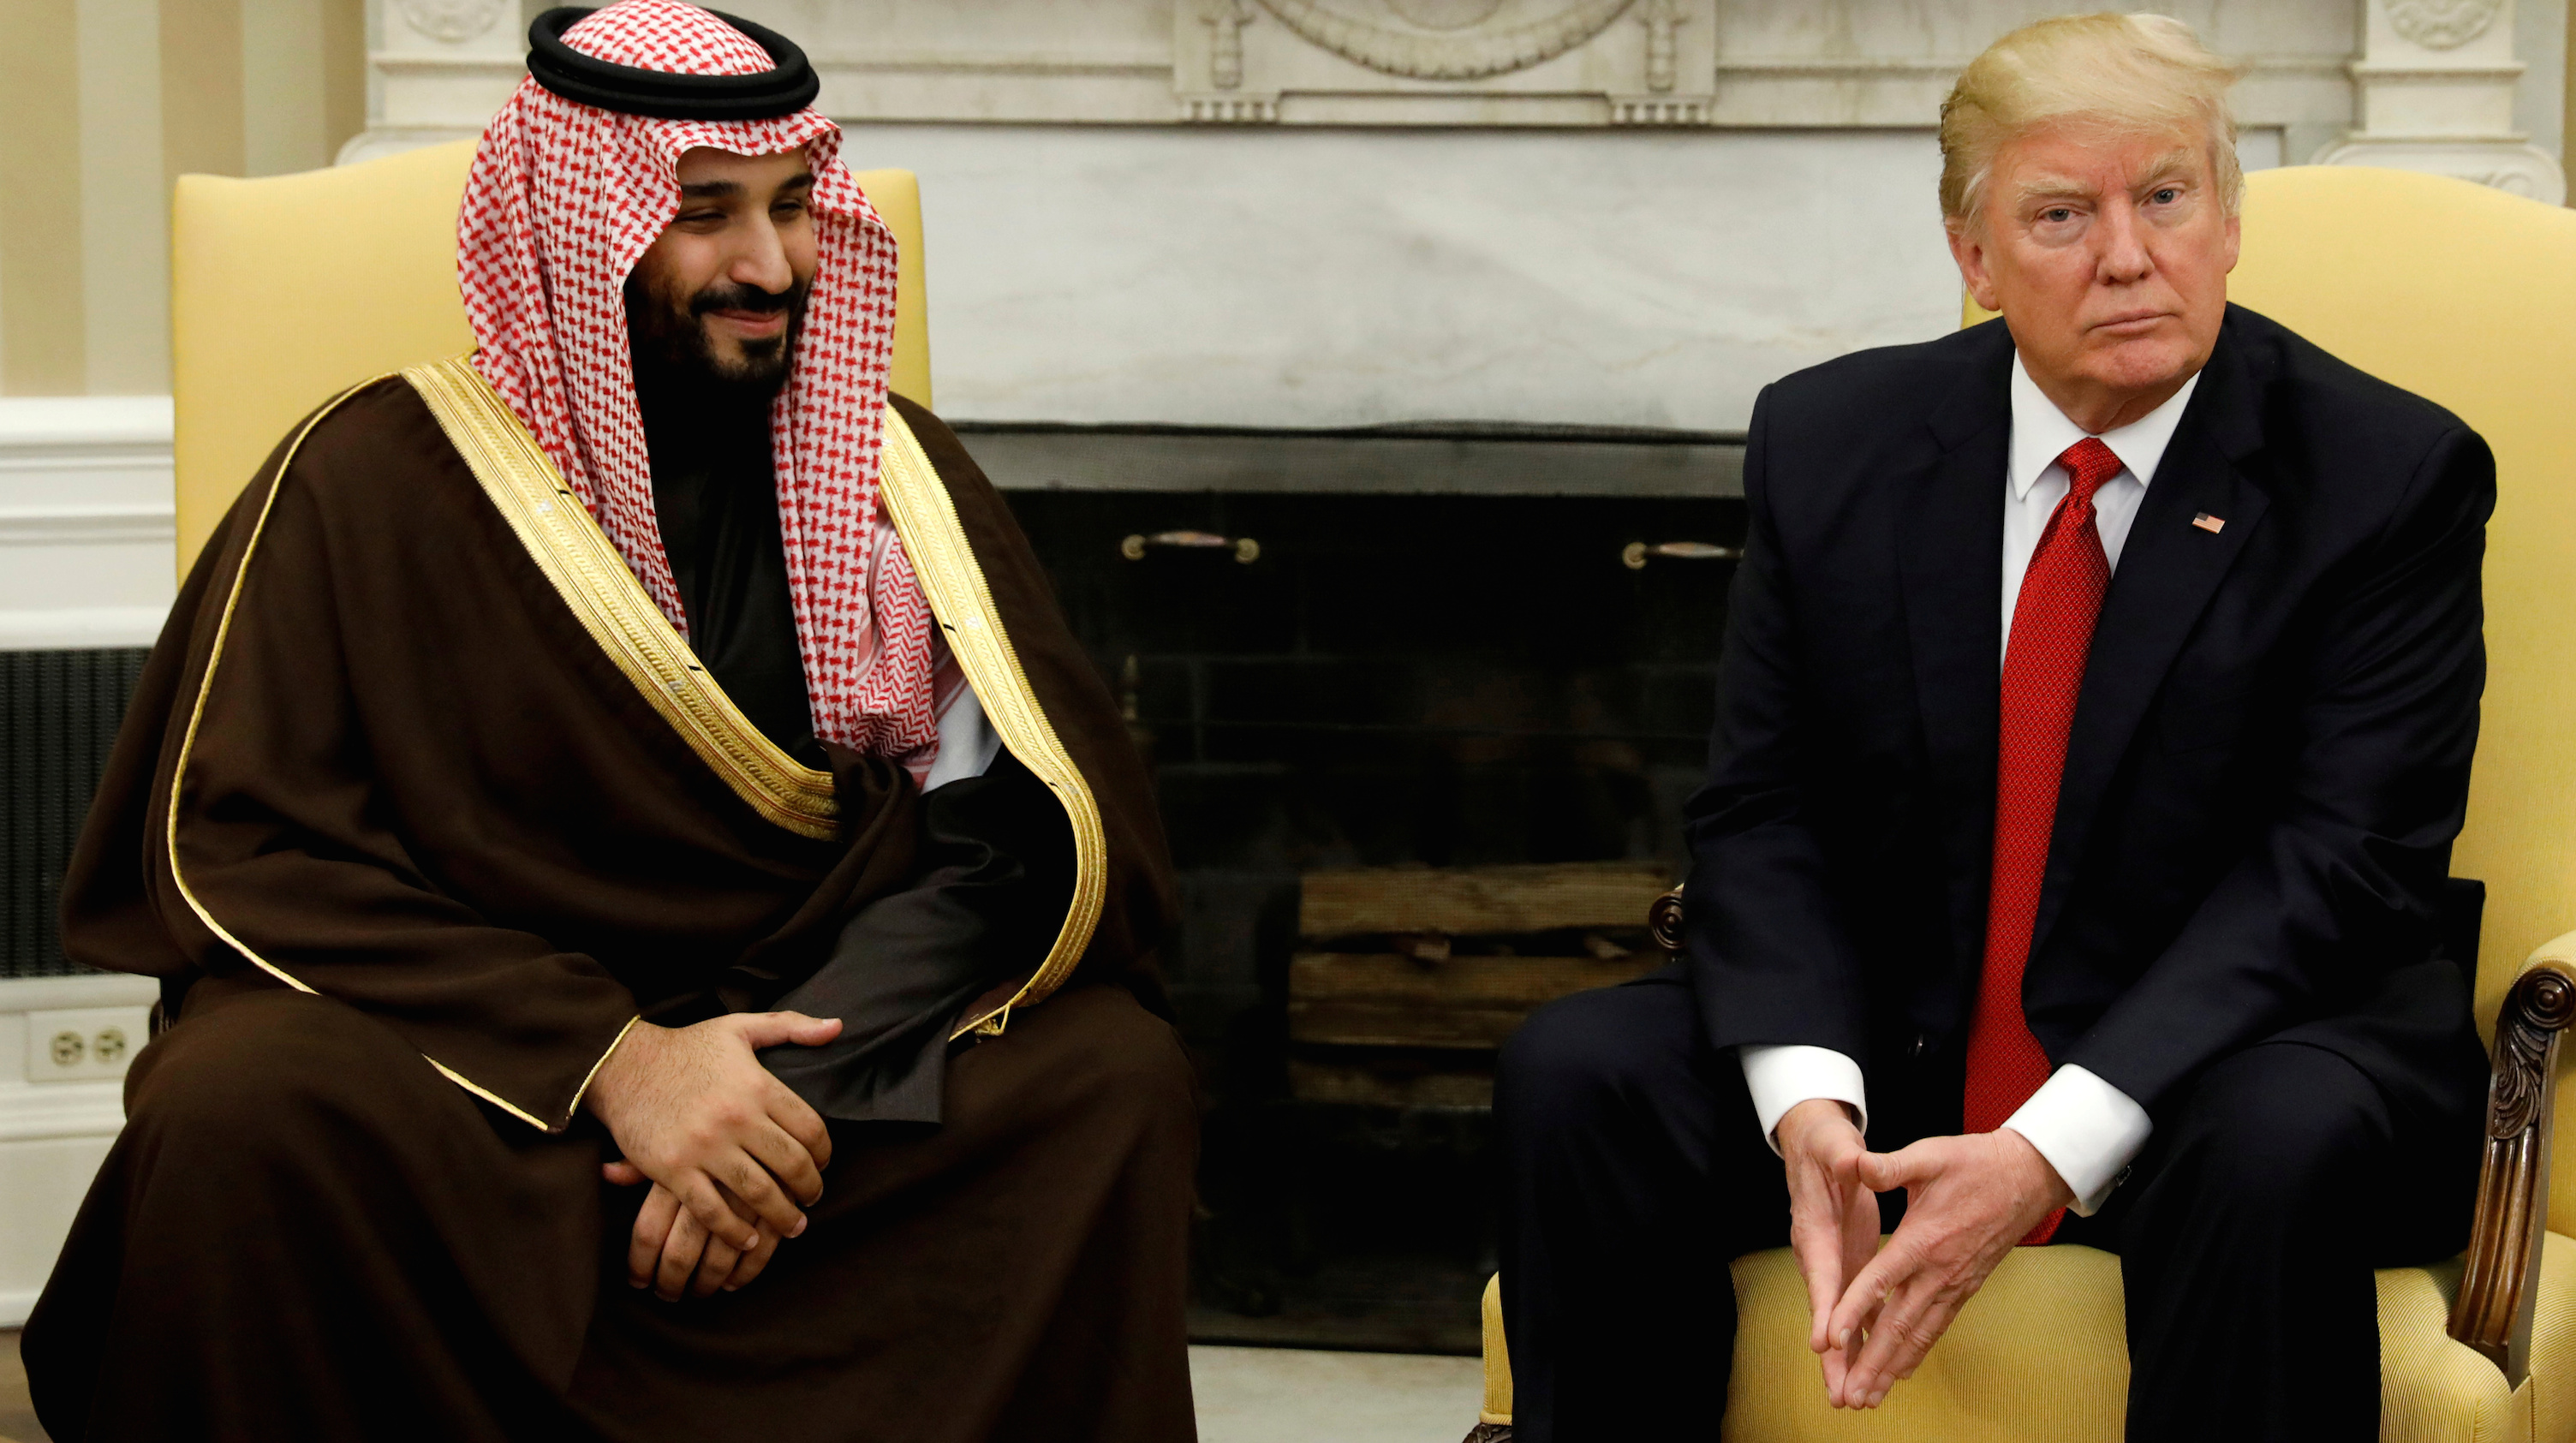 FILE PHOTO: U.S. President Donald Trump meets with Saudi Deputy Crown Prince and Minister of Defense Mohammed bin Salman in the Oval Office of the White House in Washington, U.S., March 14, 2017. REUTERS/Kevin Lamarque/File Photo - RTS14SIT